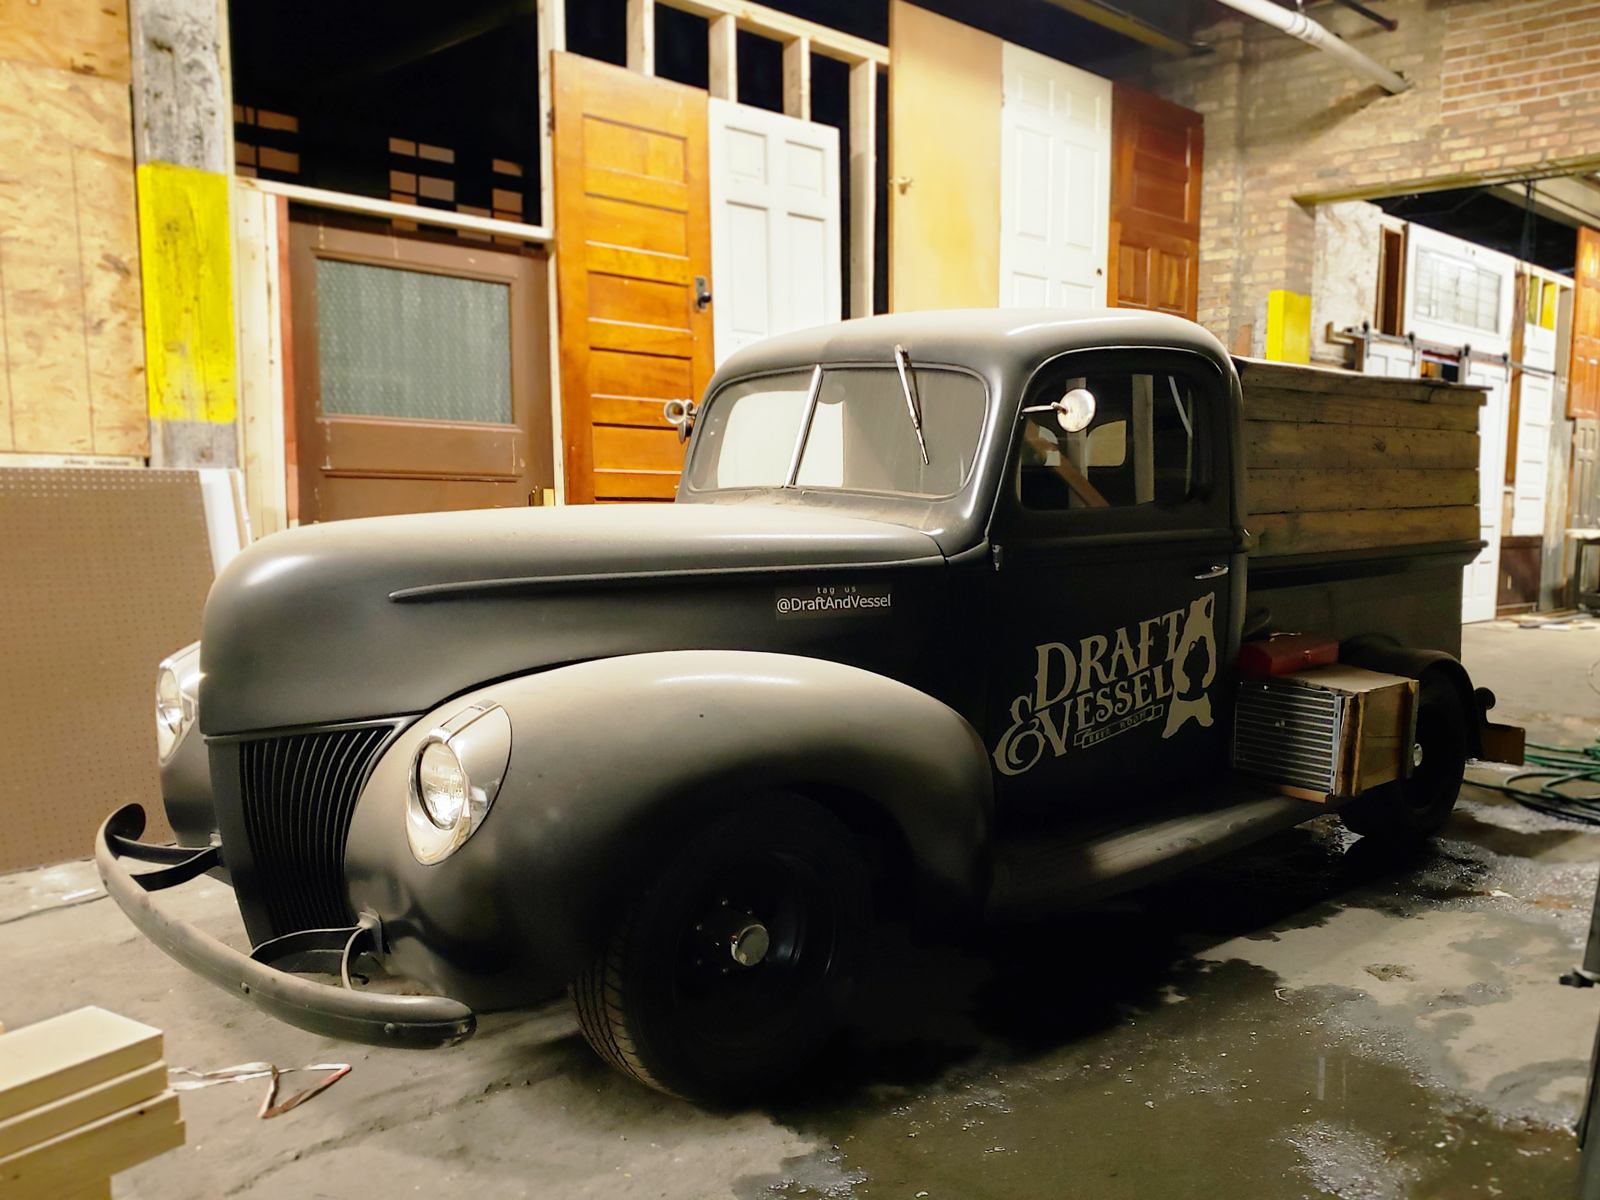 An vintage truck painted with the Draft and Vessel logo.